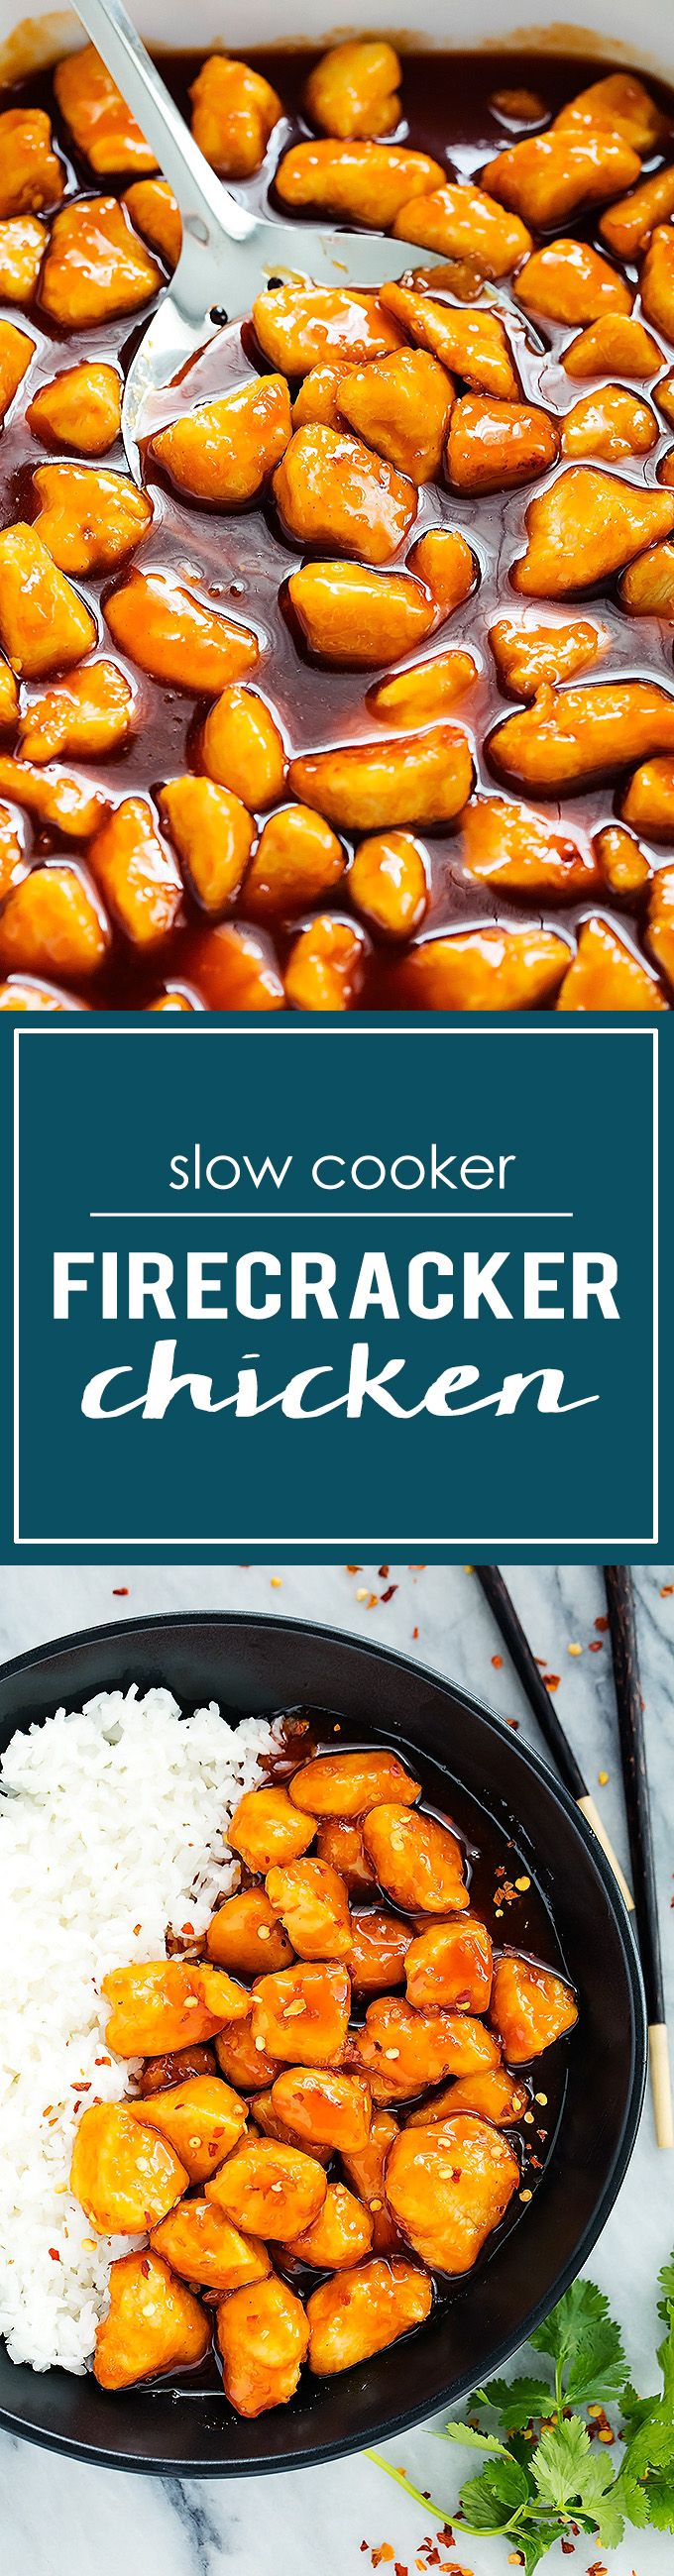 Slow Cooker Firecracker Chicken | Creme de la Crumb